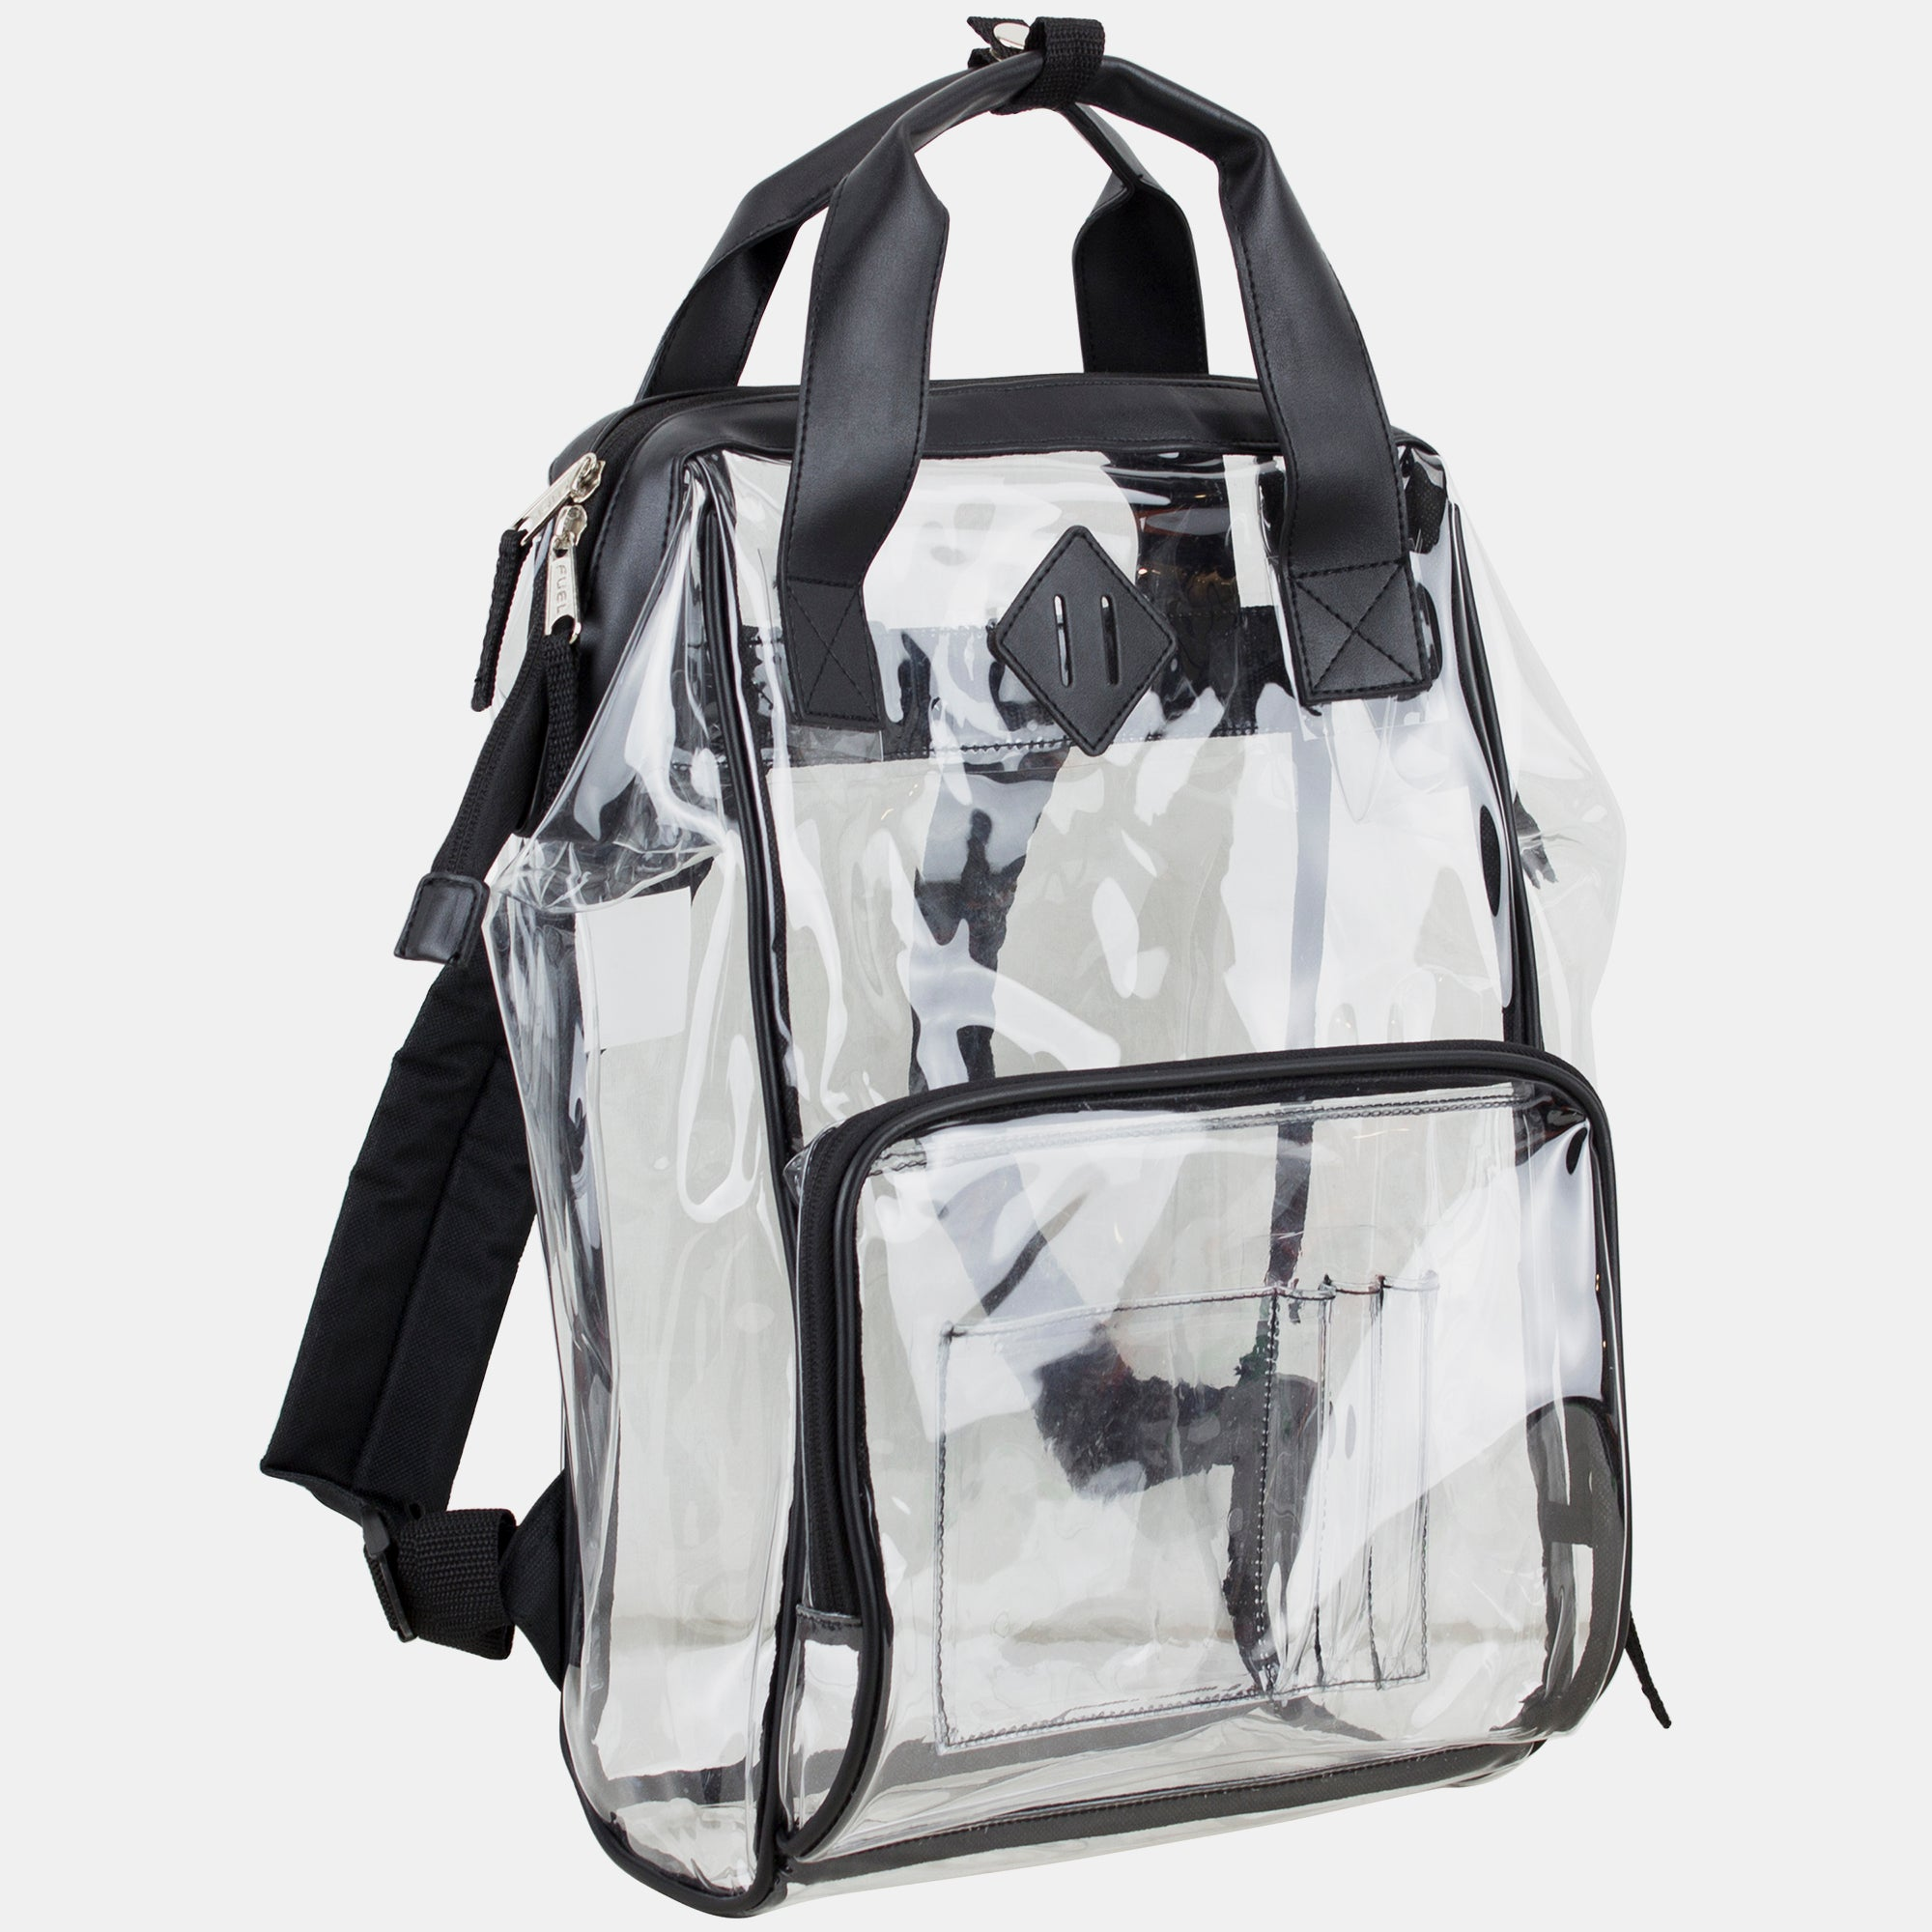 Fuel Clear Stadium Bag Collection - Fully Transparent Bag